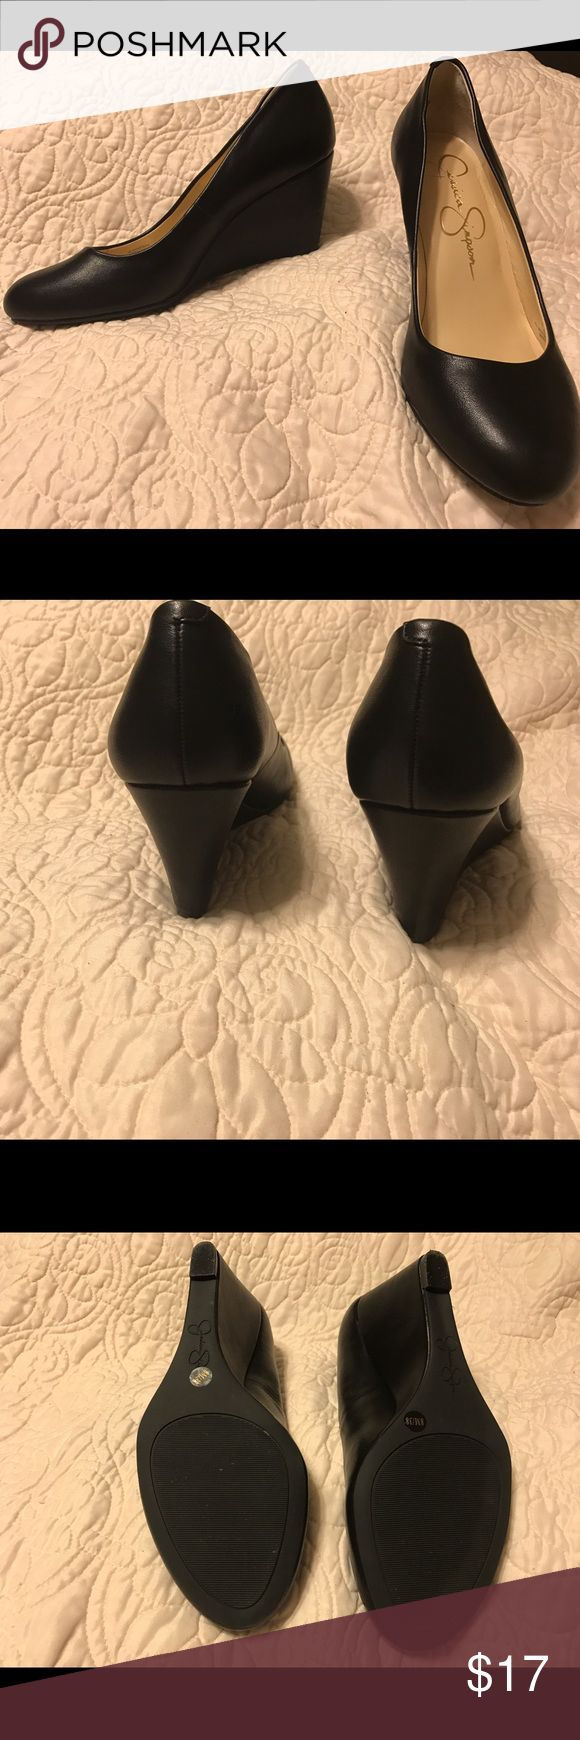 """Jessica Simpson Sampson Wedges, Black, Size 8 Jessica Simpson Sampson Wedges. Black. Size 8. Heel Height: 3"""". Worn once, but bottoms are almost like new (see pictures). Jessica Simpson Shoes Wedges"""